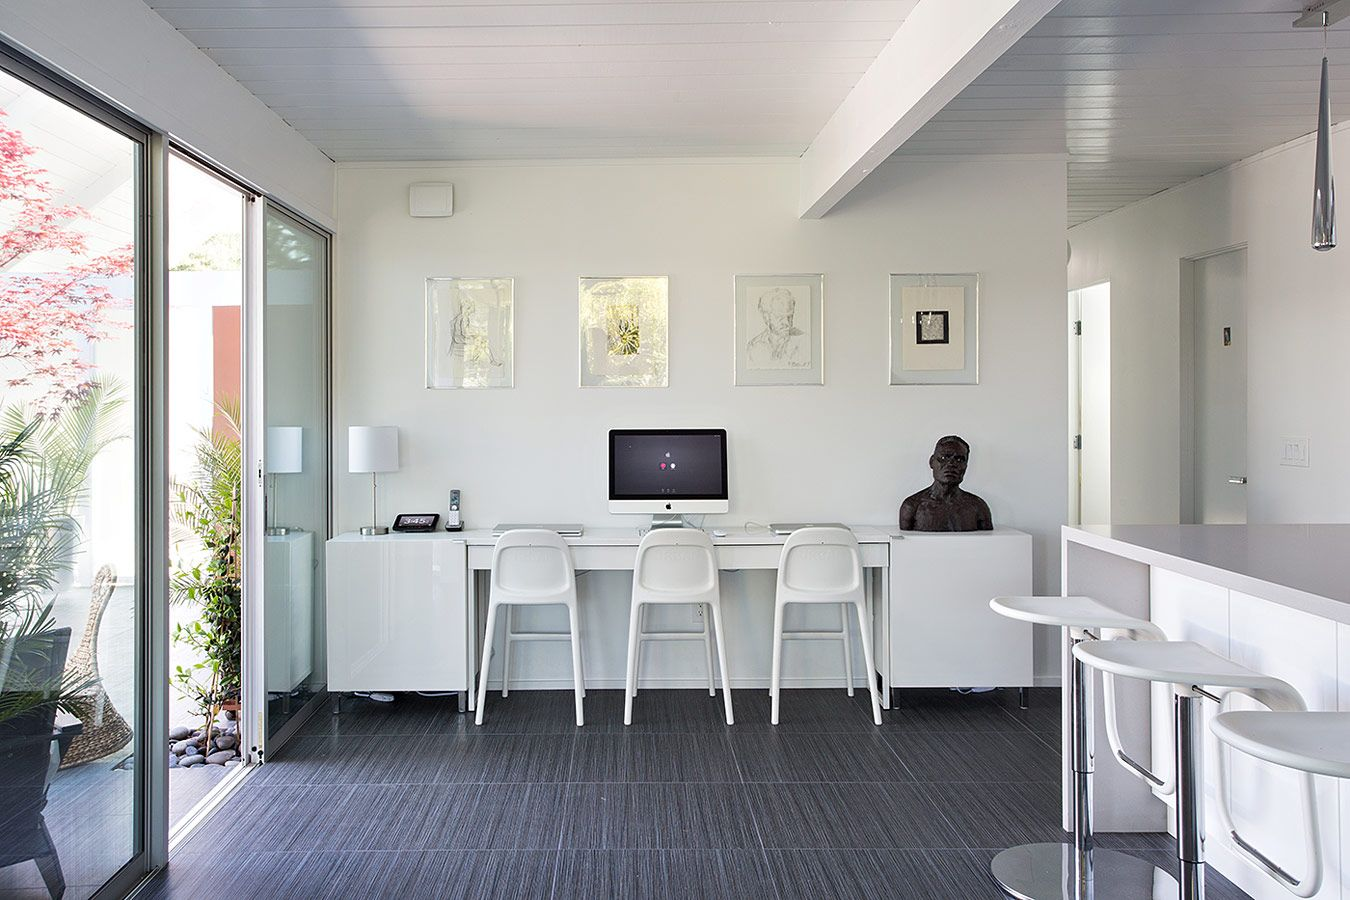 This triple seated home office area is a great addition for a modern